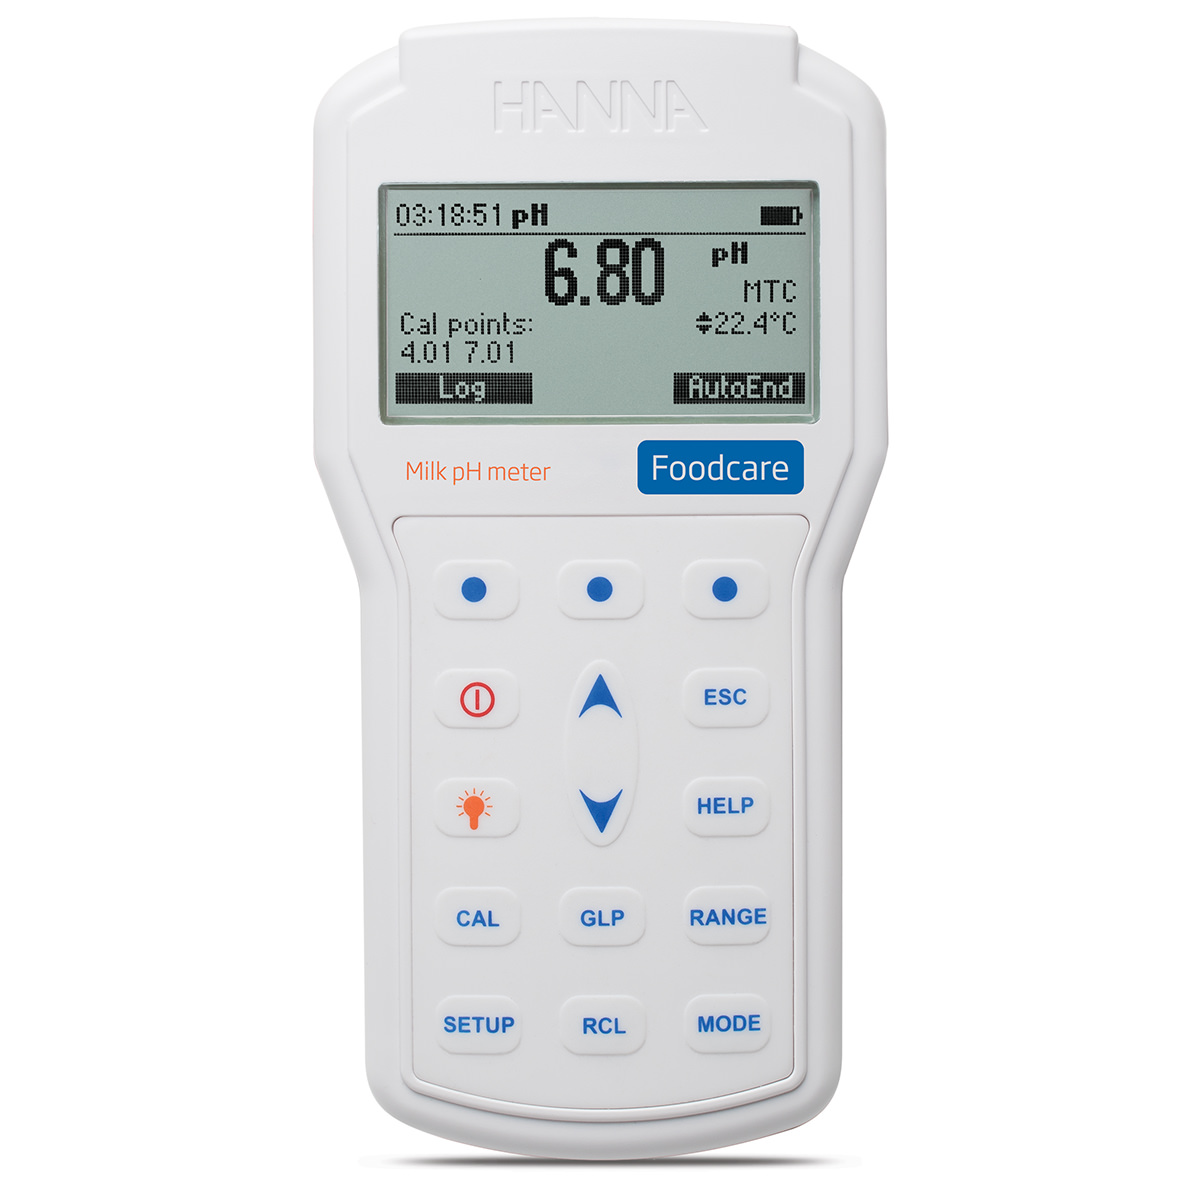 Professional Portable Milk pH Meter - HI98162